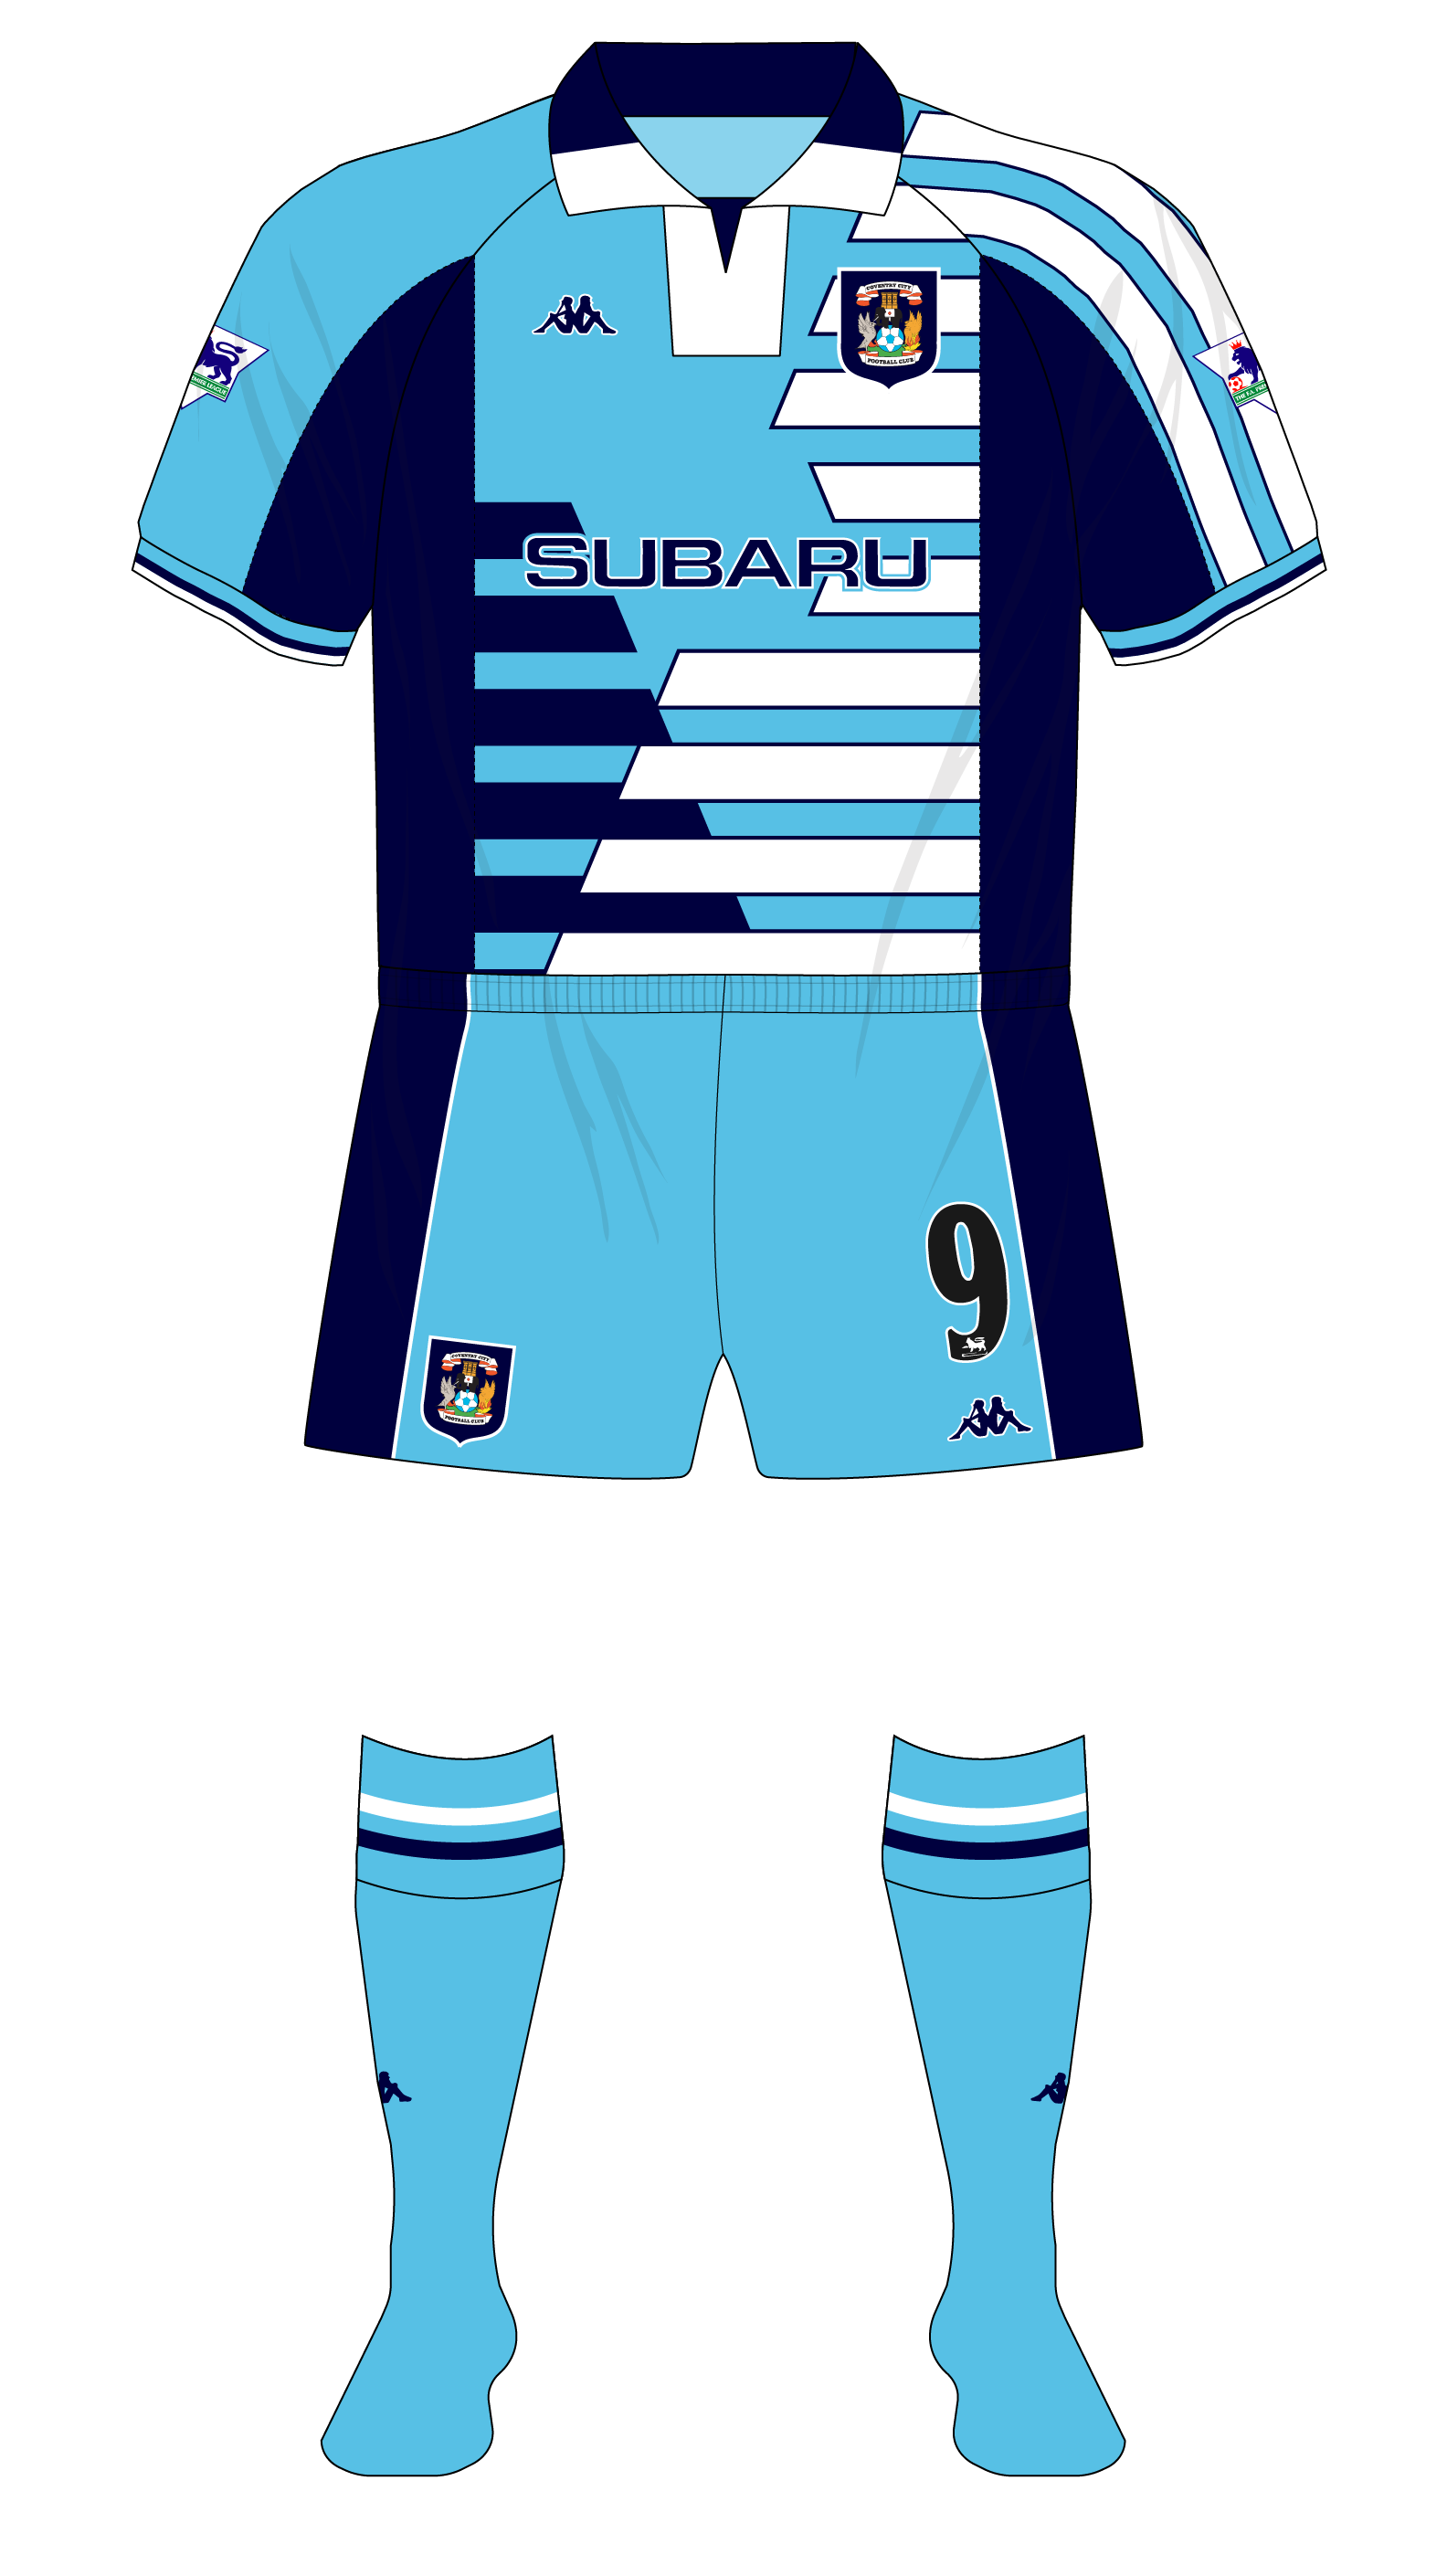 Coventry-City-Kappa-1998-South-Africa-Fantasy-Kit-